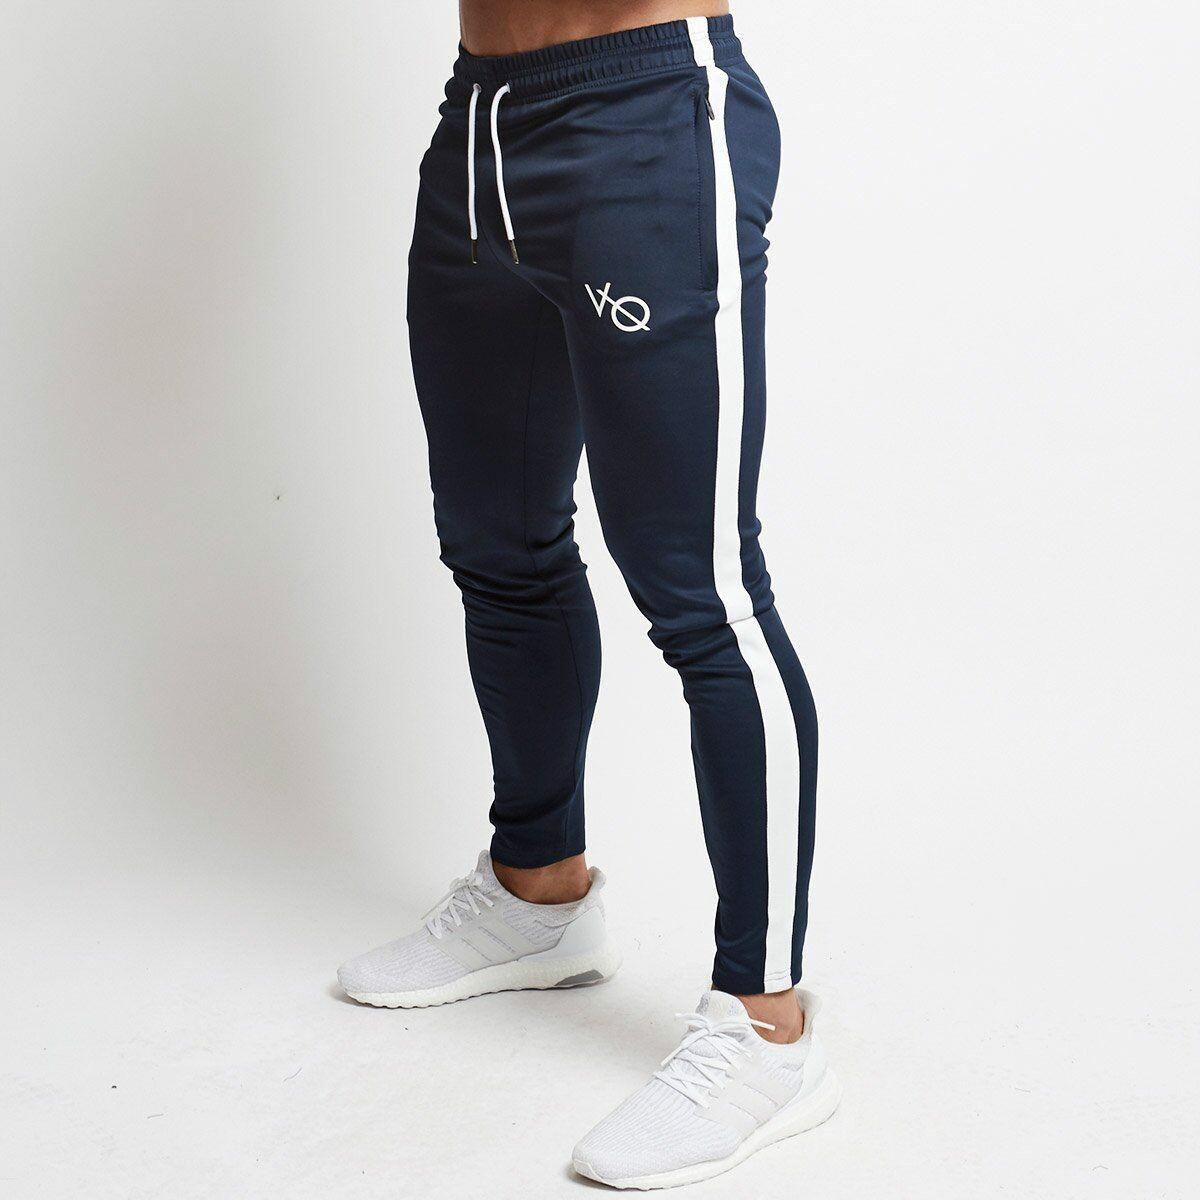 on sale 93d3b 4fd08 2019 Men Pants Jogger Mens Sweatpants Men Casual Sweatpants Baggy Jogger  Trousers Fashion Fitted Bottoms Streetwear Pants From Yoshinee,  15.74    DHgate.Com